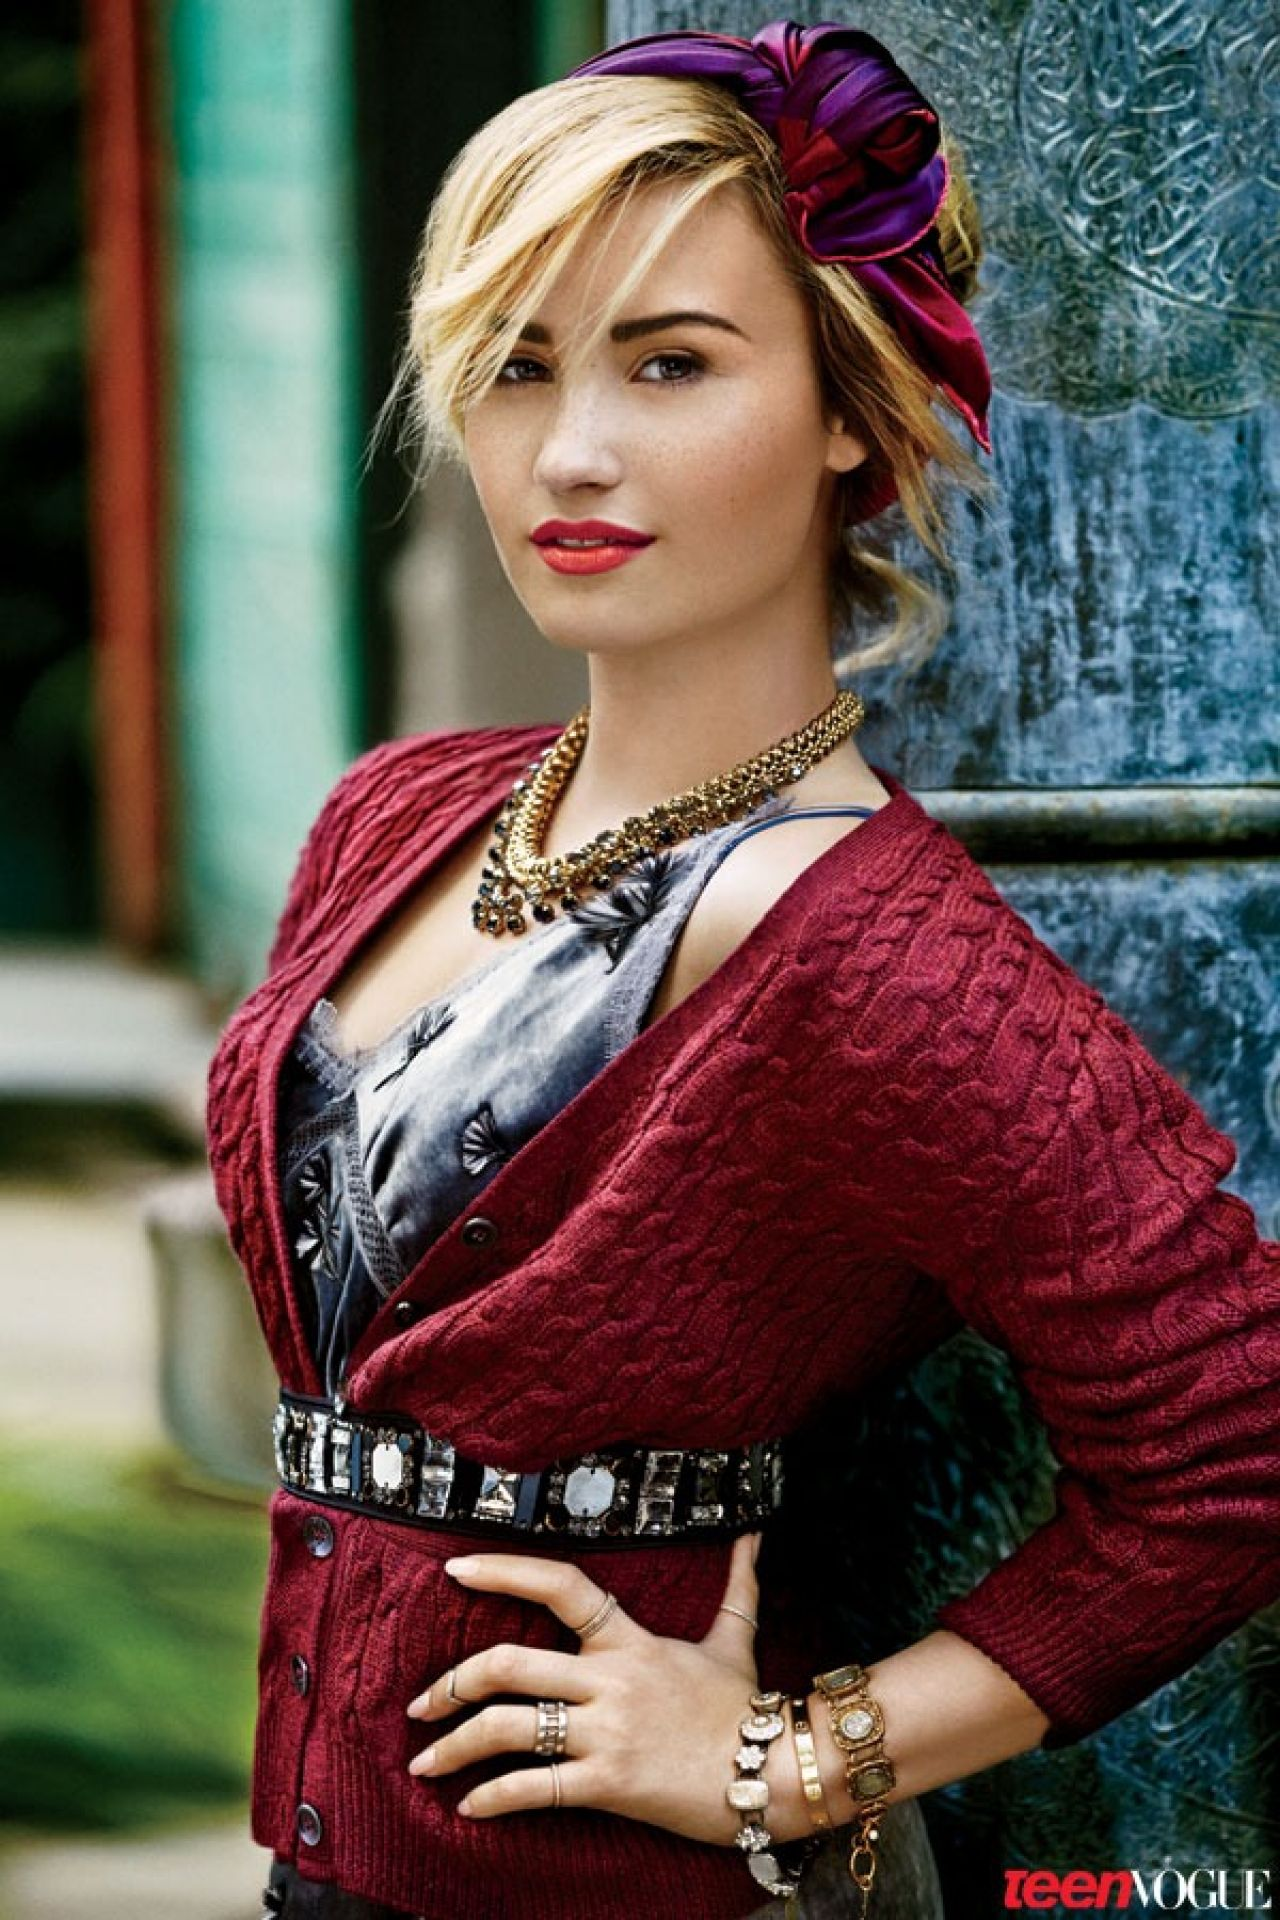 Demi Lovato in Teen Vogue, November 2013